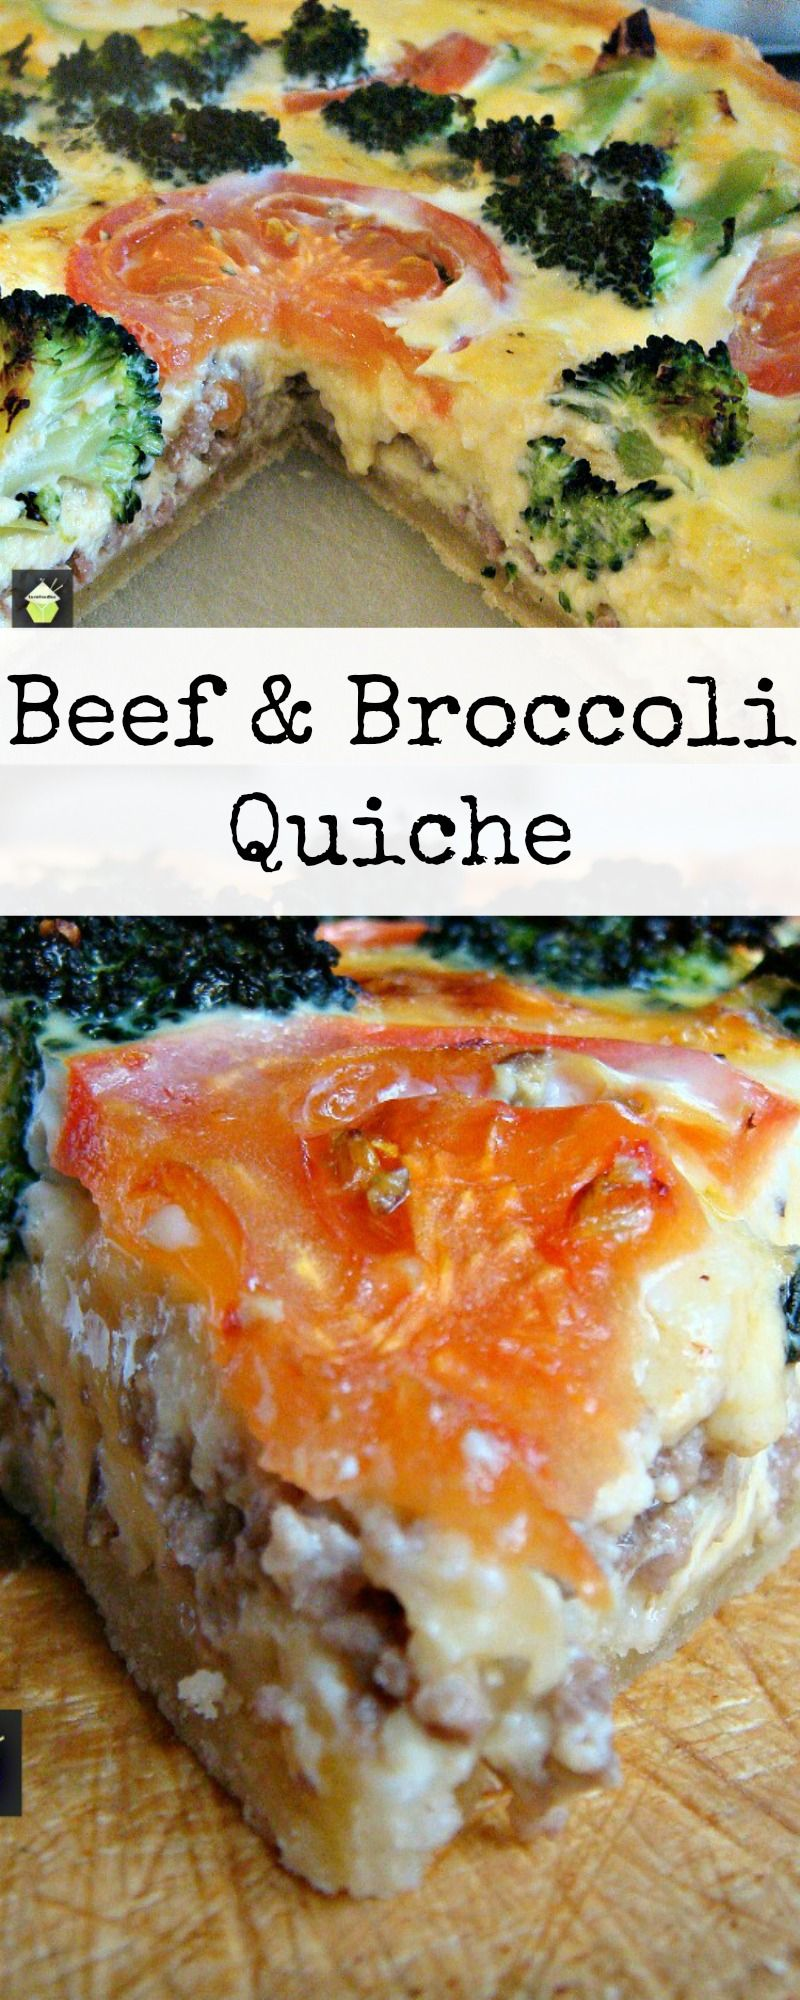 Ground Beef Broccoli Quiche A Great Recipe Suitable For Lunches Picnics Or Dinner Broccoli Beef Broccoli Quiche Broccoli Quiche Recipes